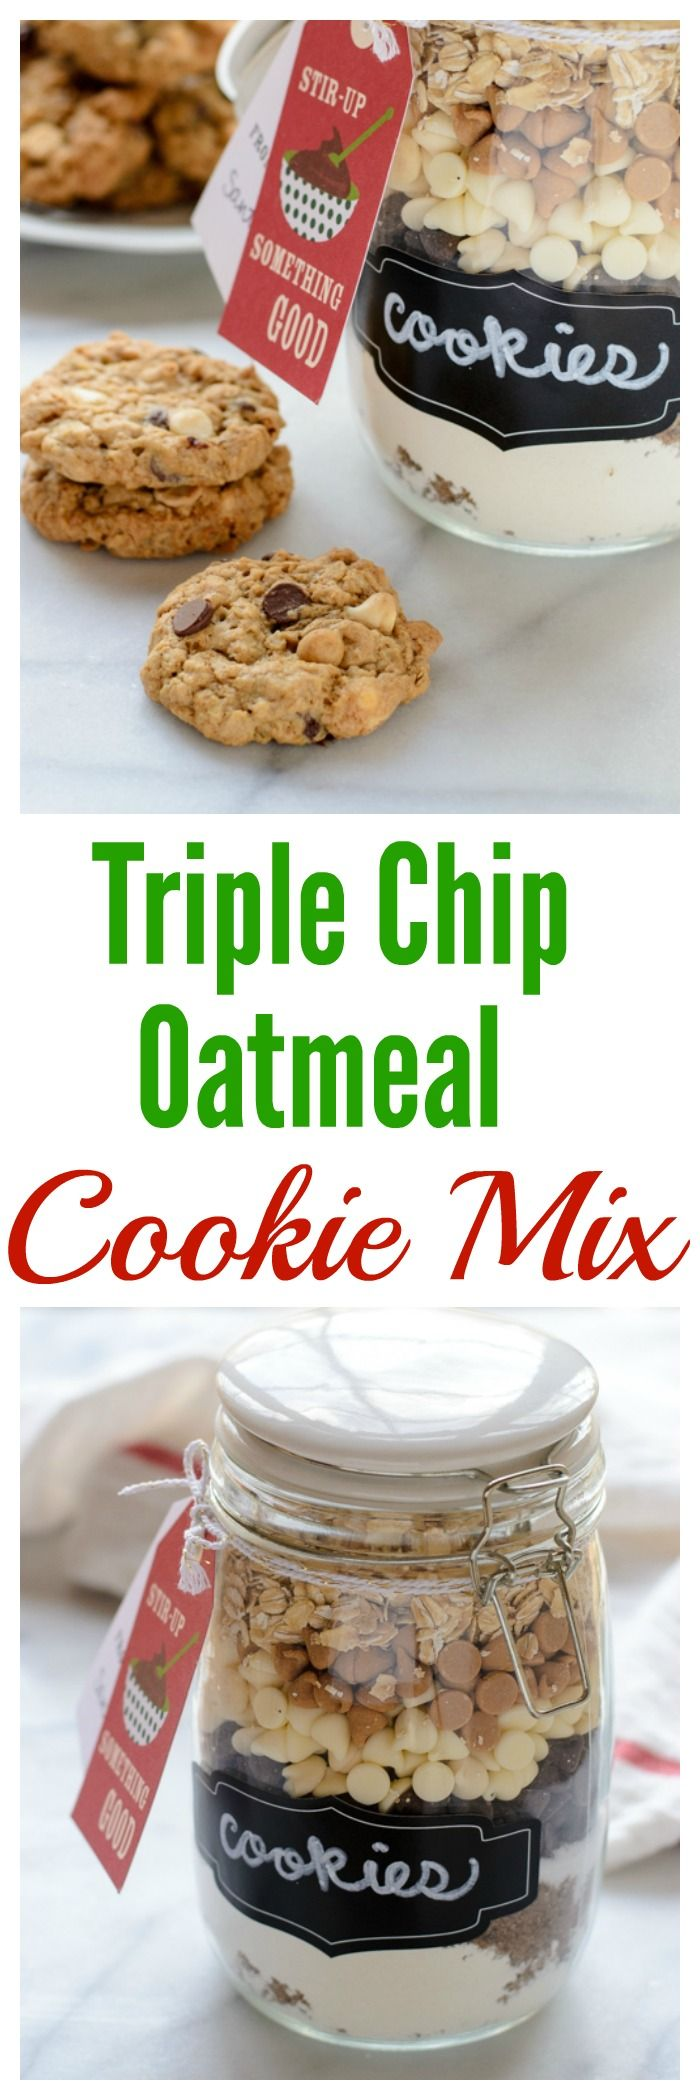 This cookie mix in a jar is the perfect homemade holiday gift or Christmas present! It is absolutely delicious and everyone would want it under the tree!